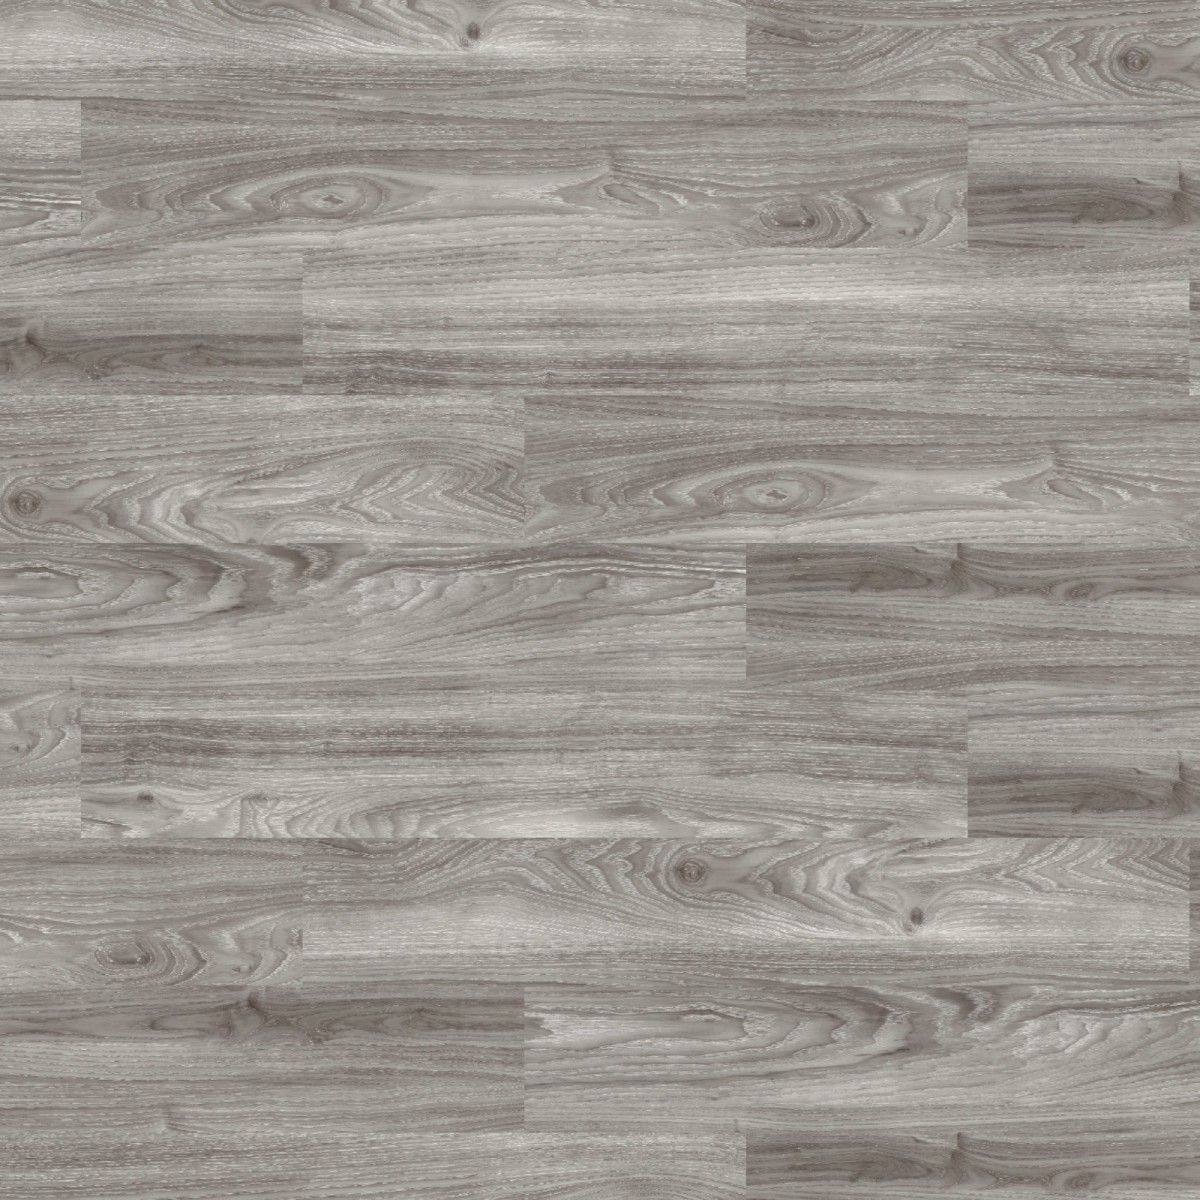 gray wooden flooring | CL3027 Grey Ash | Cavalio Flooring - Gray Wooden Flooring CL3027 Grey Ash Cavalio Flooring House